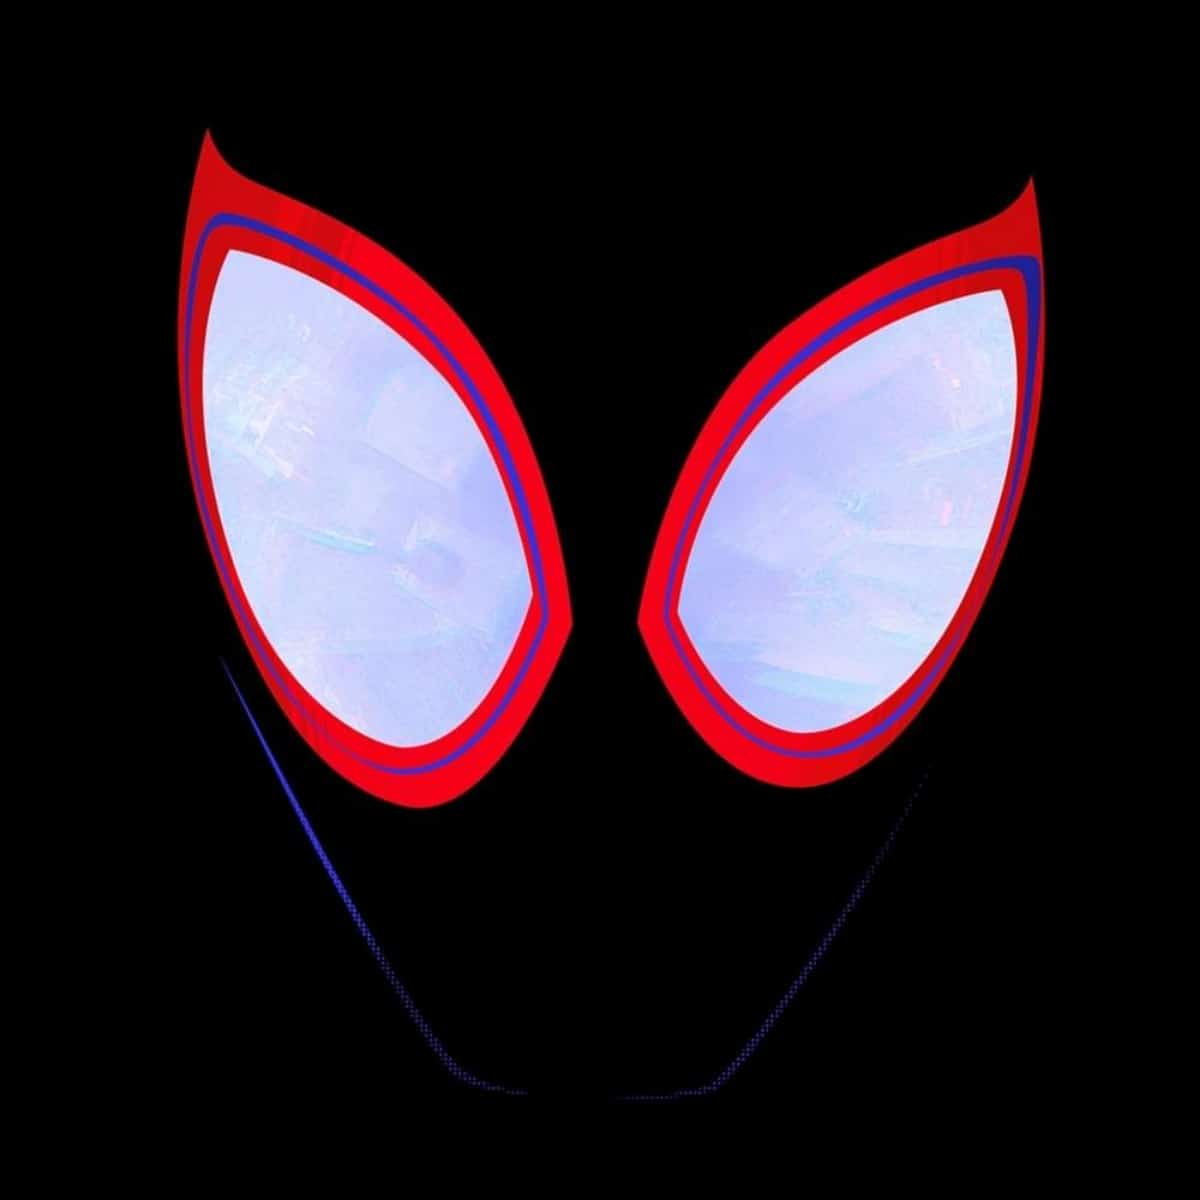 MP3: Post Malone — Sunflower feat. Swae Lee